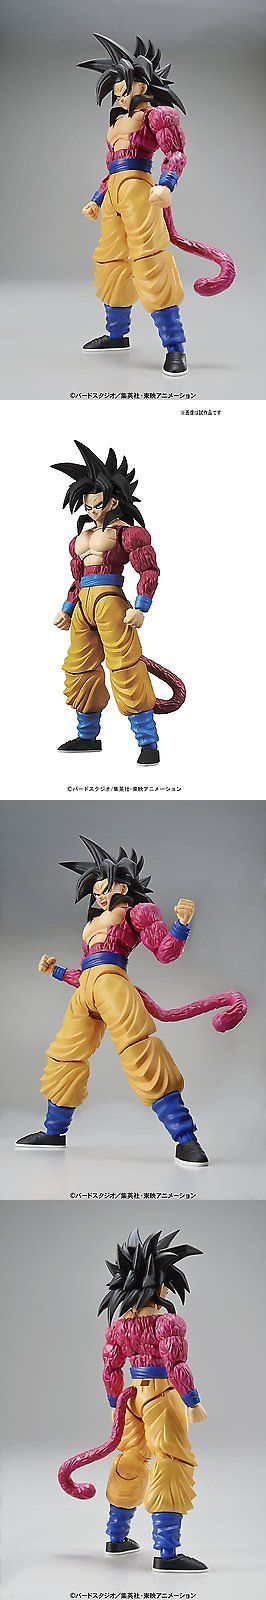 DragonBall Z 7117: Dragonball Z ~ Ss4 Goku Action Figure Model Kit ~ Bandai Figure-Rise Series -> BUY IT NOW ONLY: $44.99 on eBay!